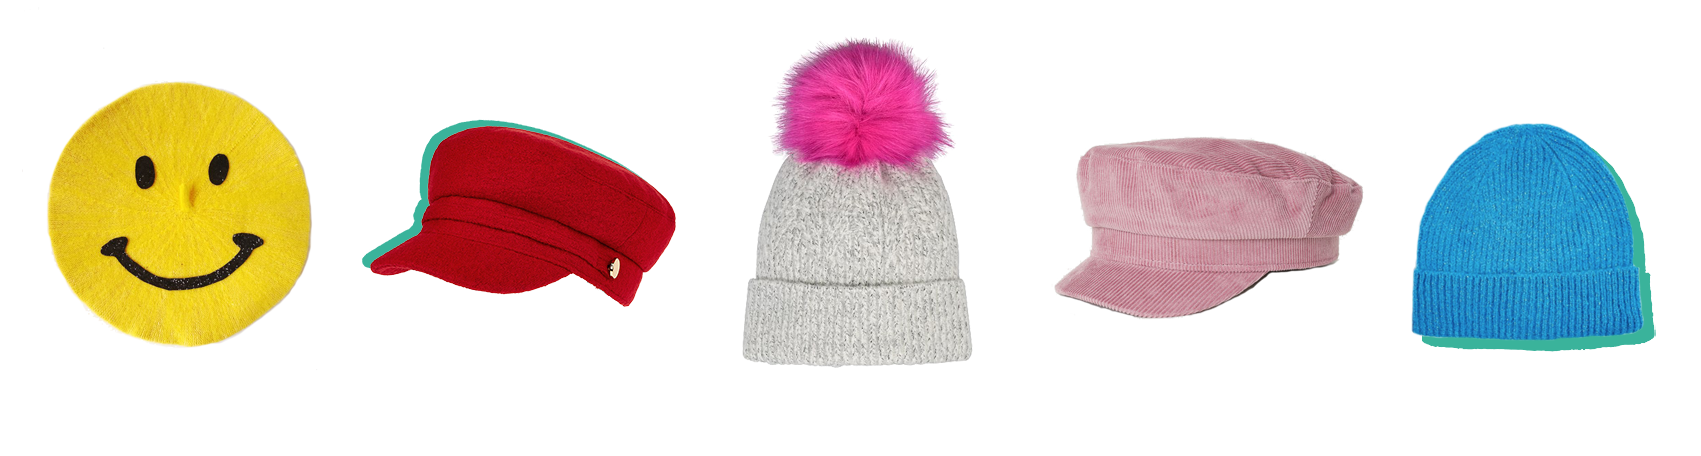 Colourful Winter Hats